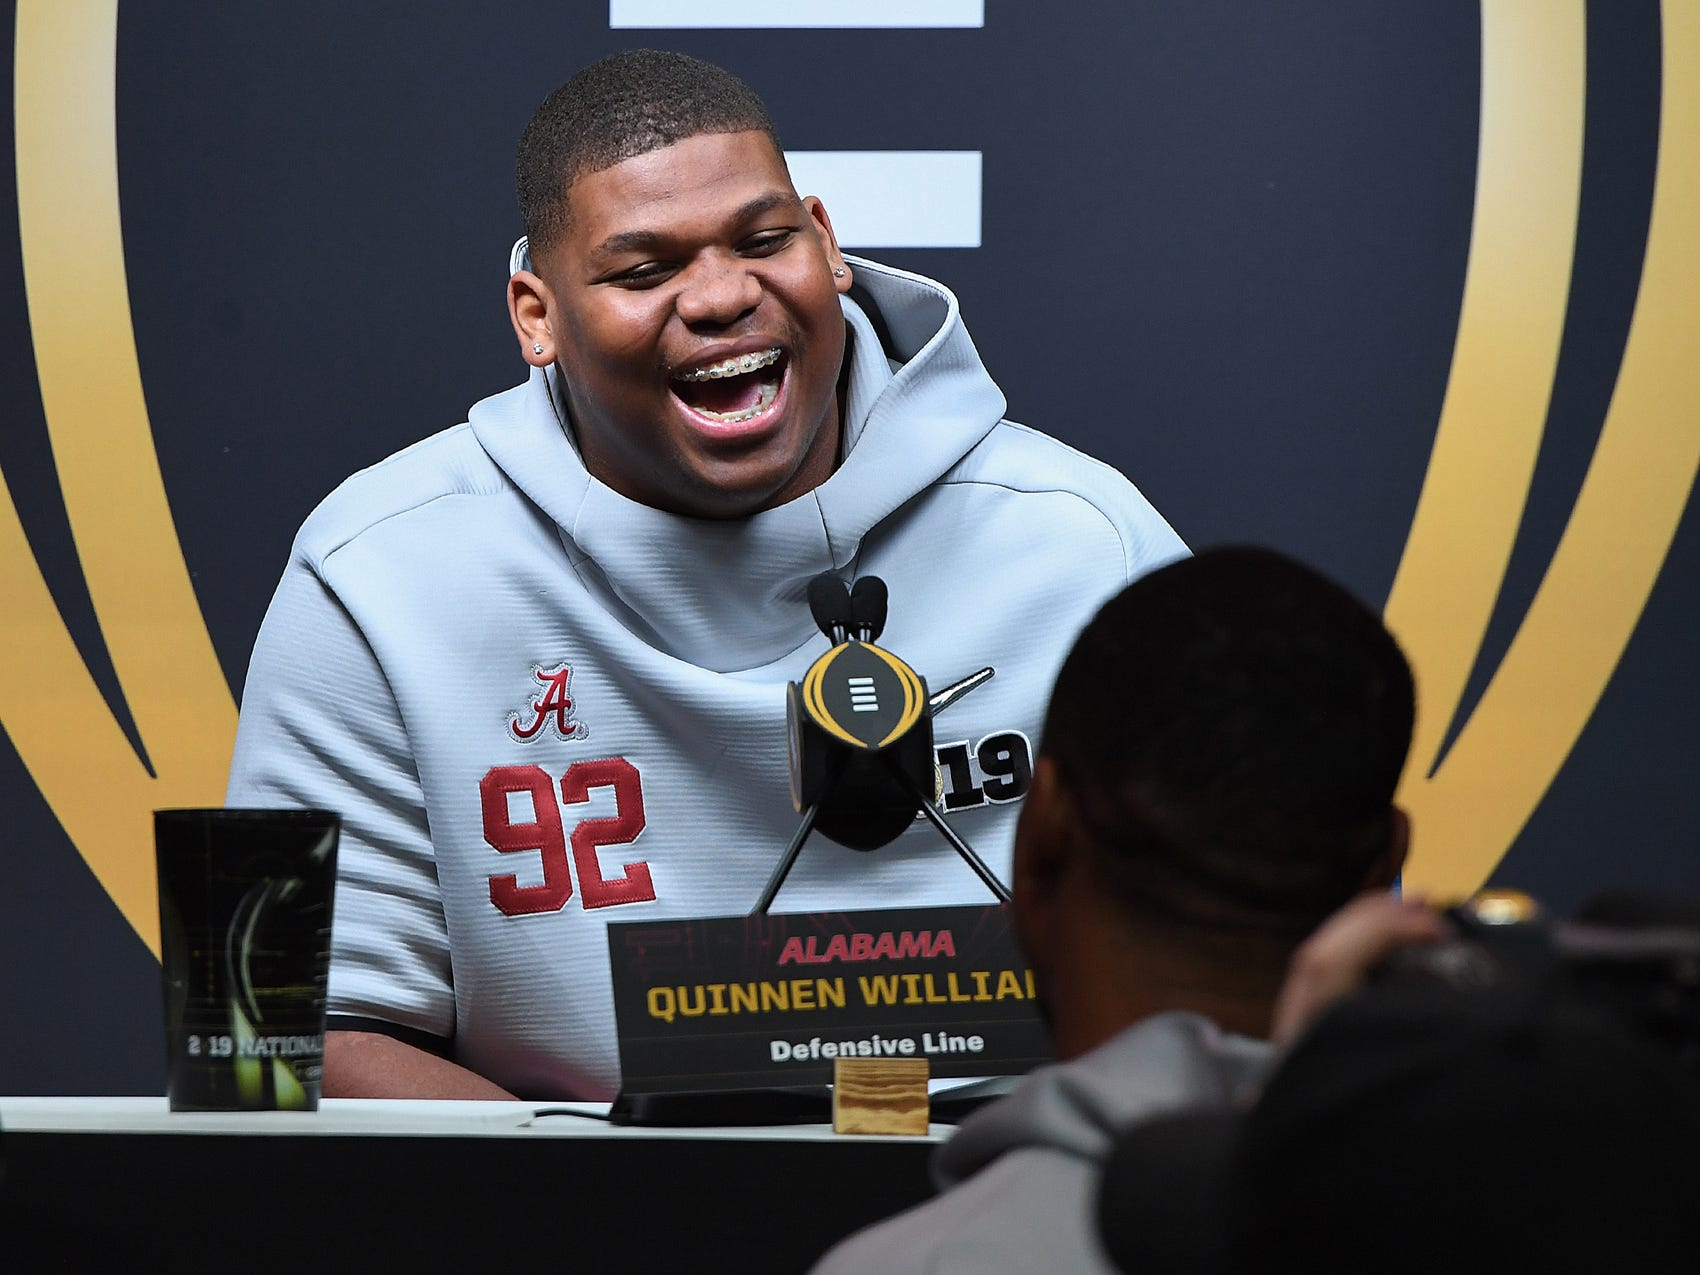 Alabama defensive lineman Quinnen Williams laughs while answering questions during the Tide's National Championship media day in Santa Jose, CA Saturday, January 5, 2019.